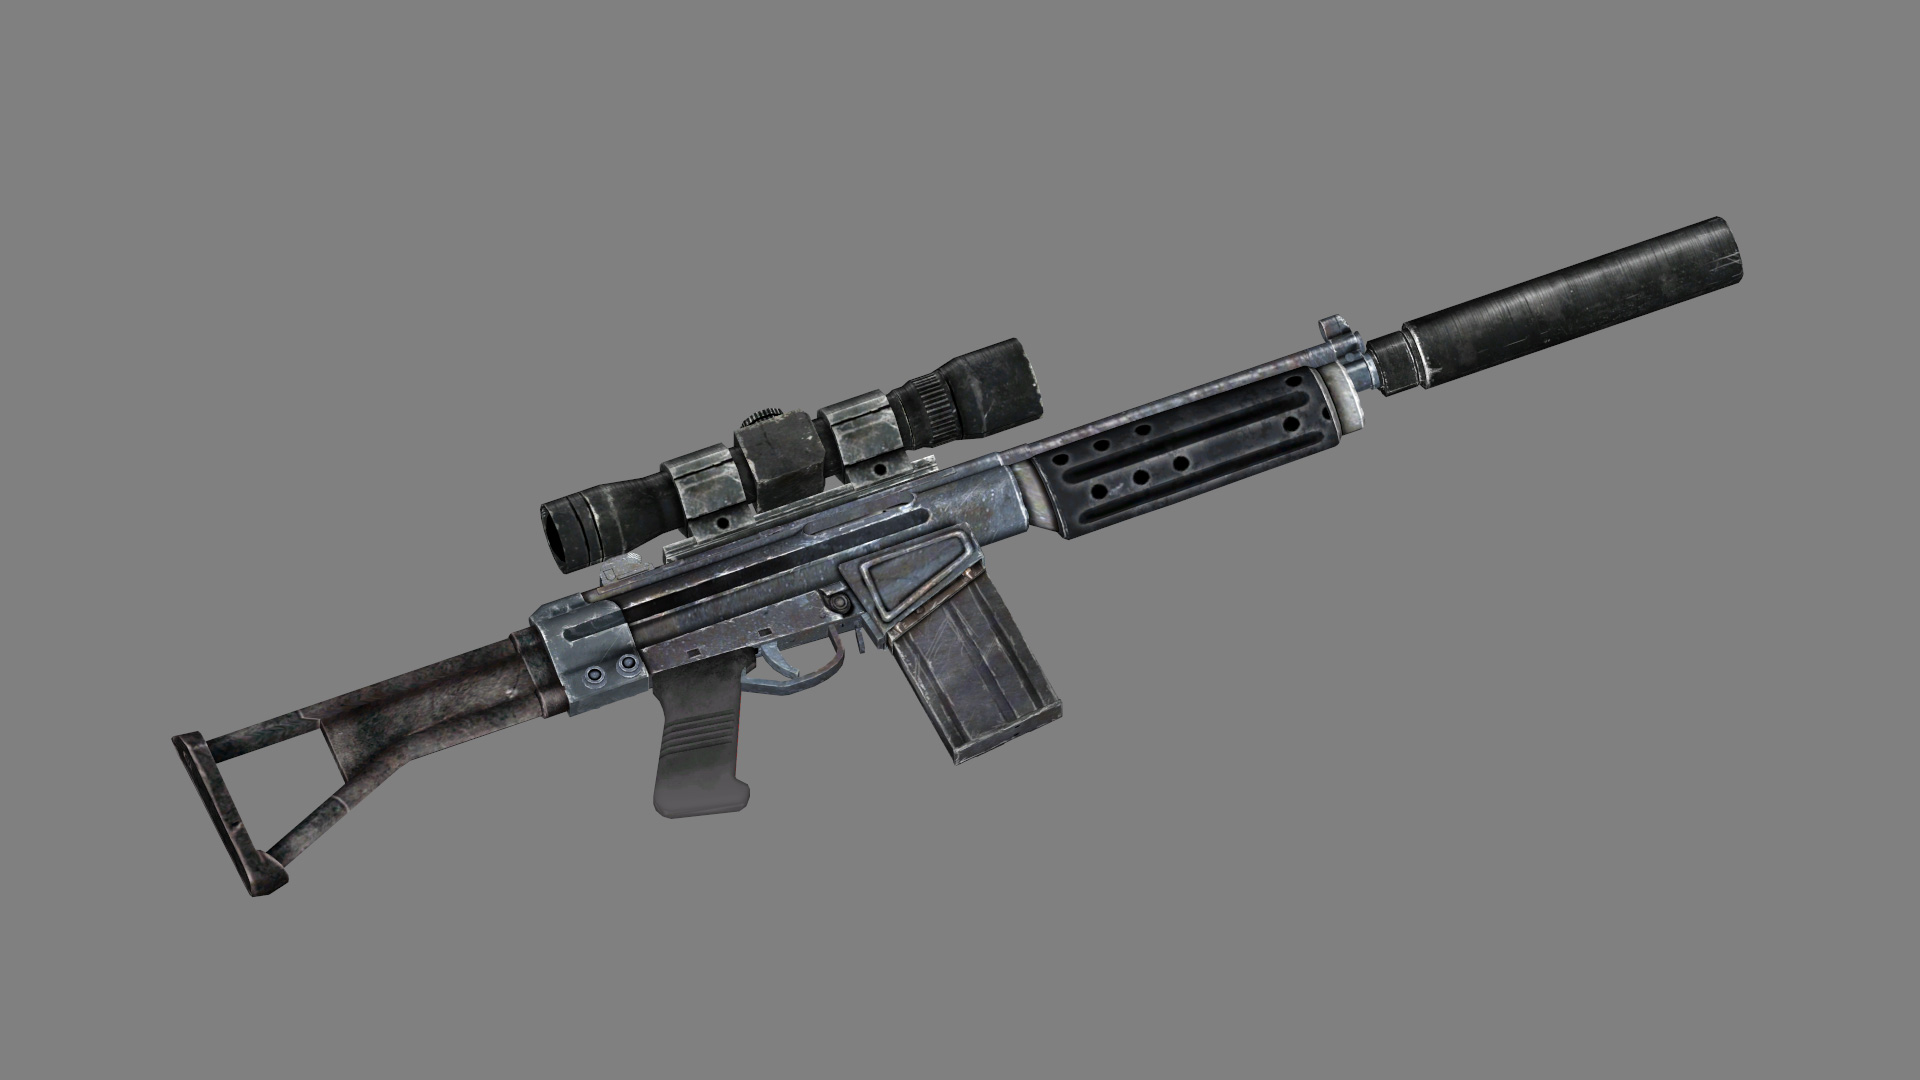 Tammer S Standalone Weapons Mega Pack At Fallout New Vegas